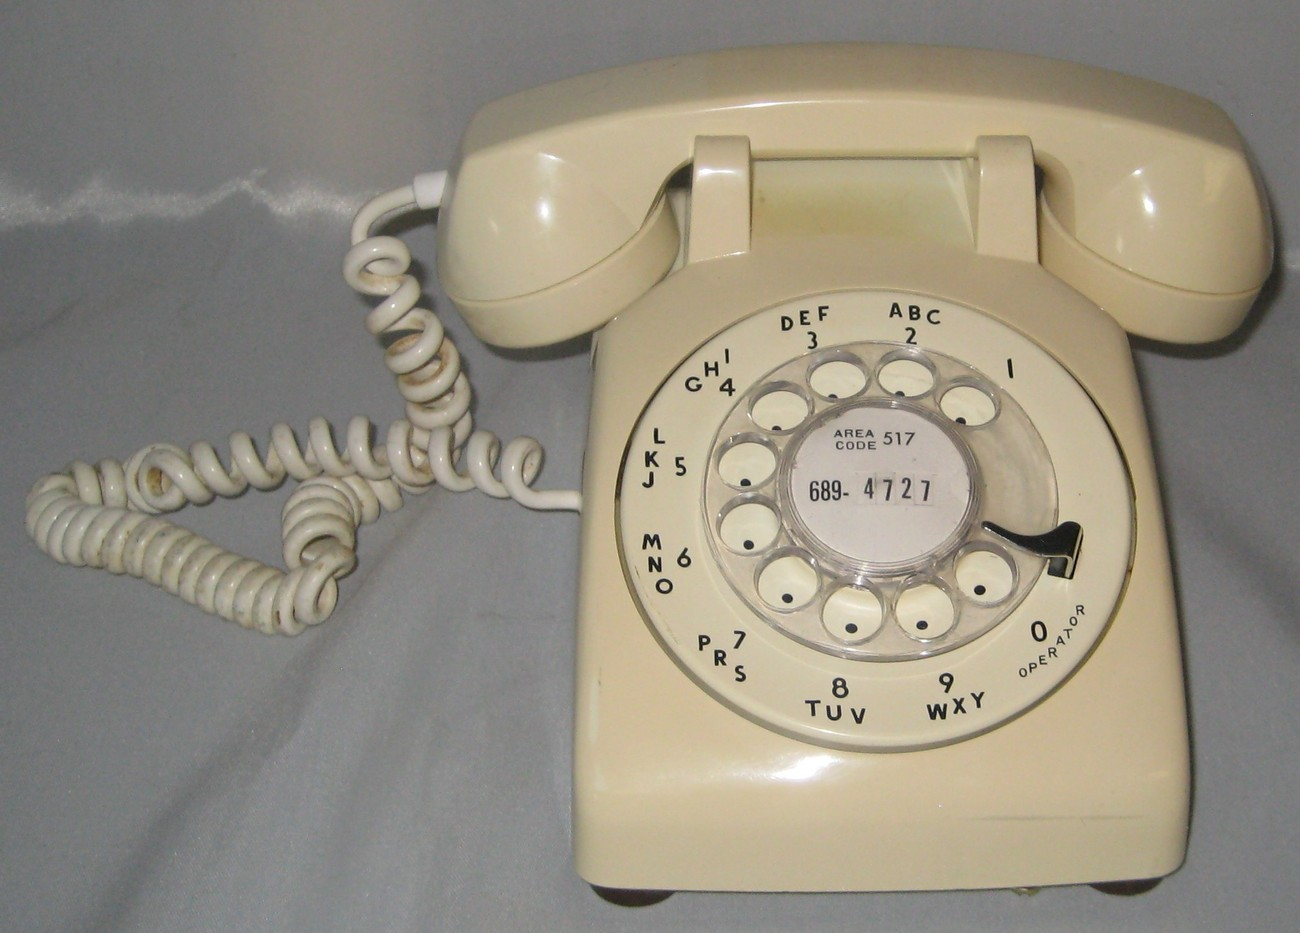 Desktop Rotary Phone White In Color Hard Wired 1940 69